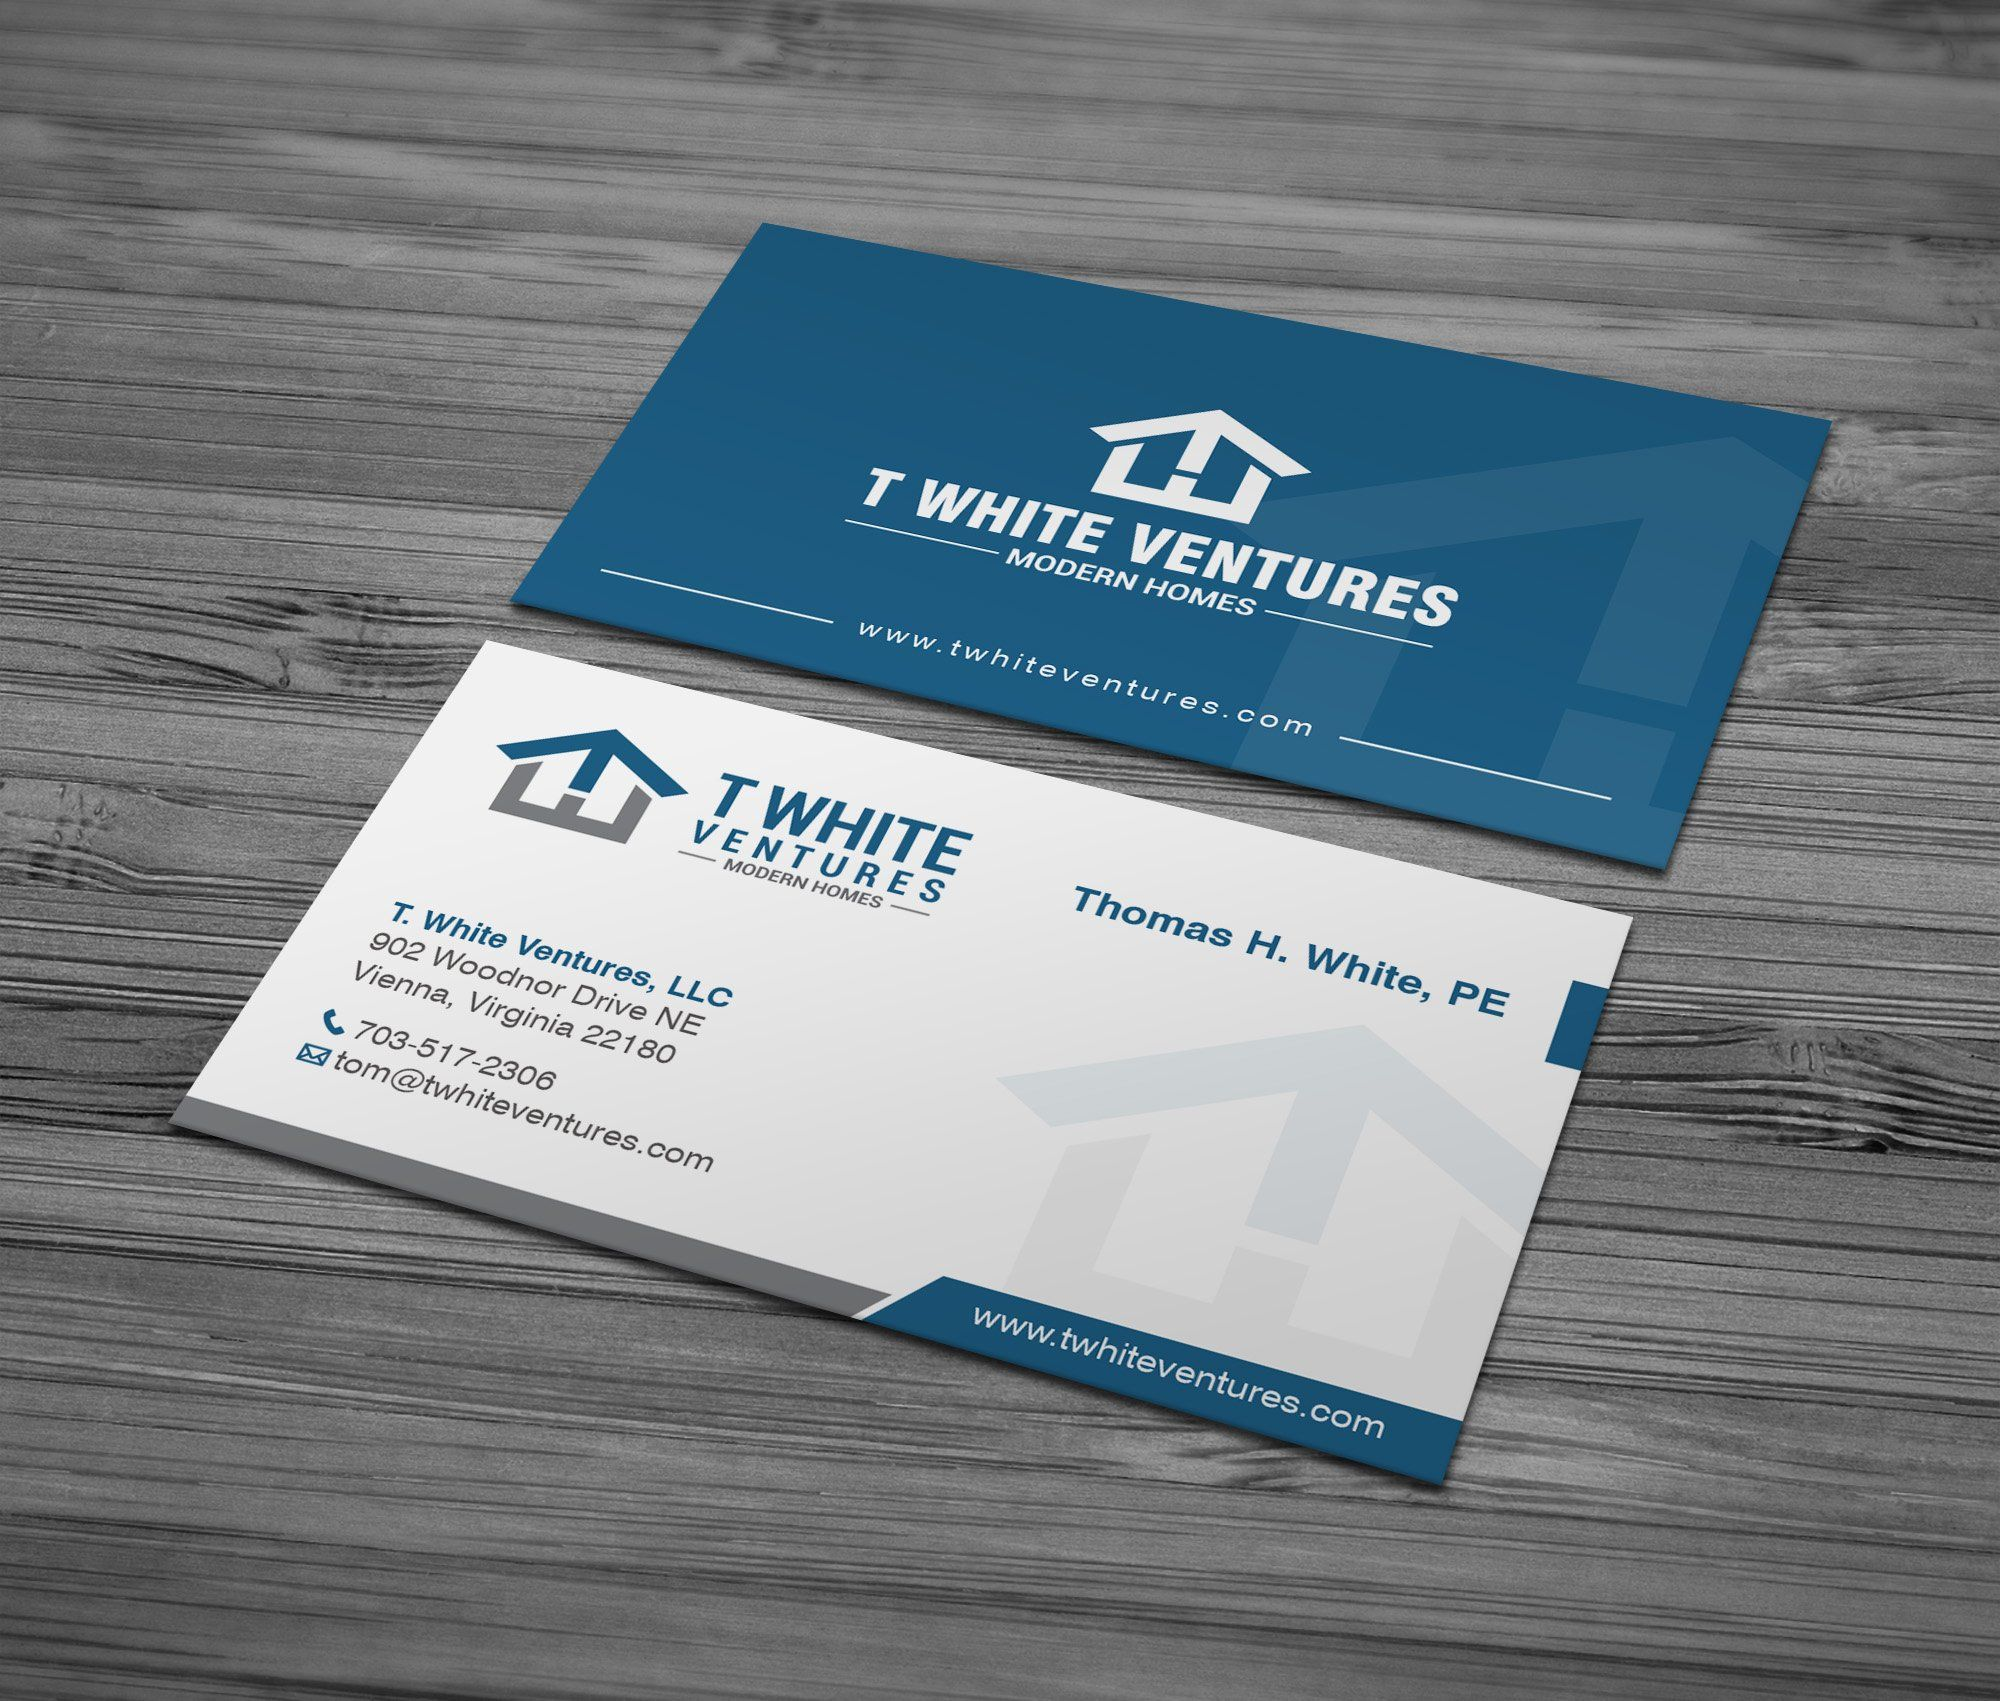 A Blue Business Card Design For A Real Estate Company Business Card Design Blue Business Card Design Blue Business Card